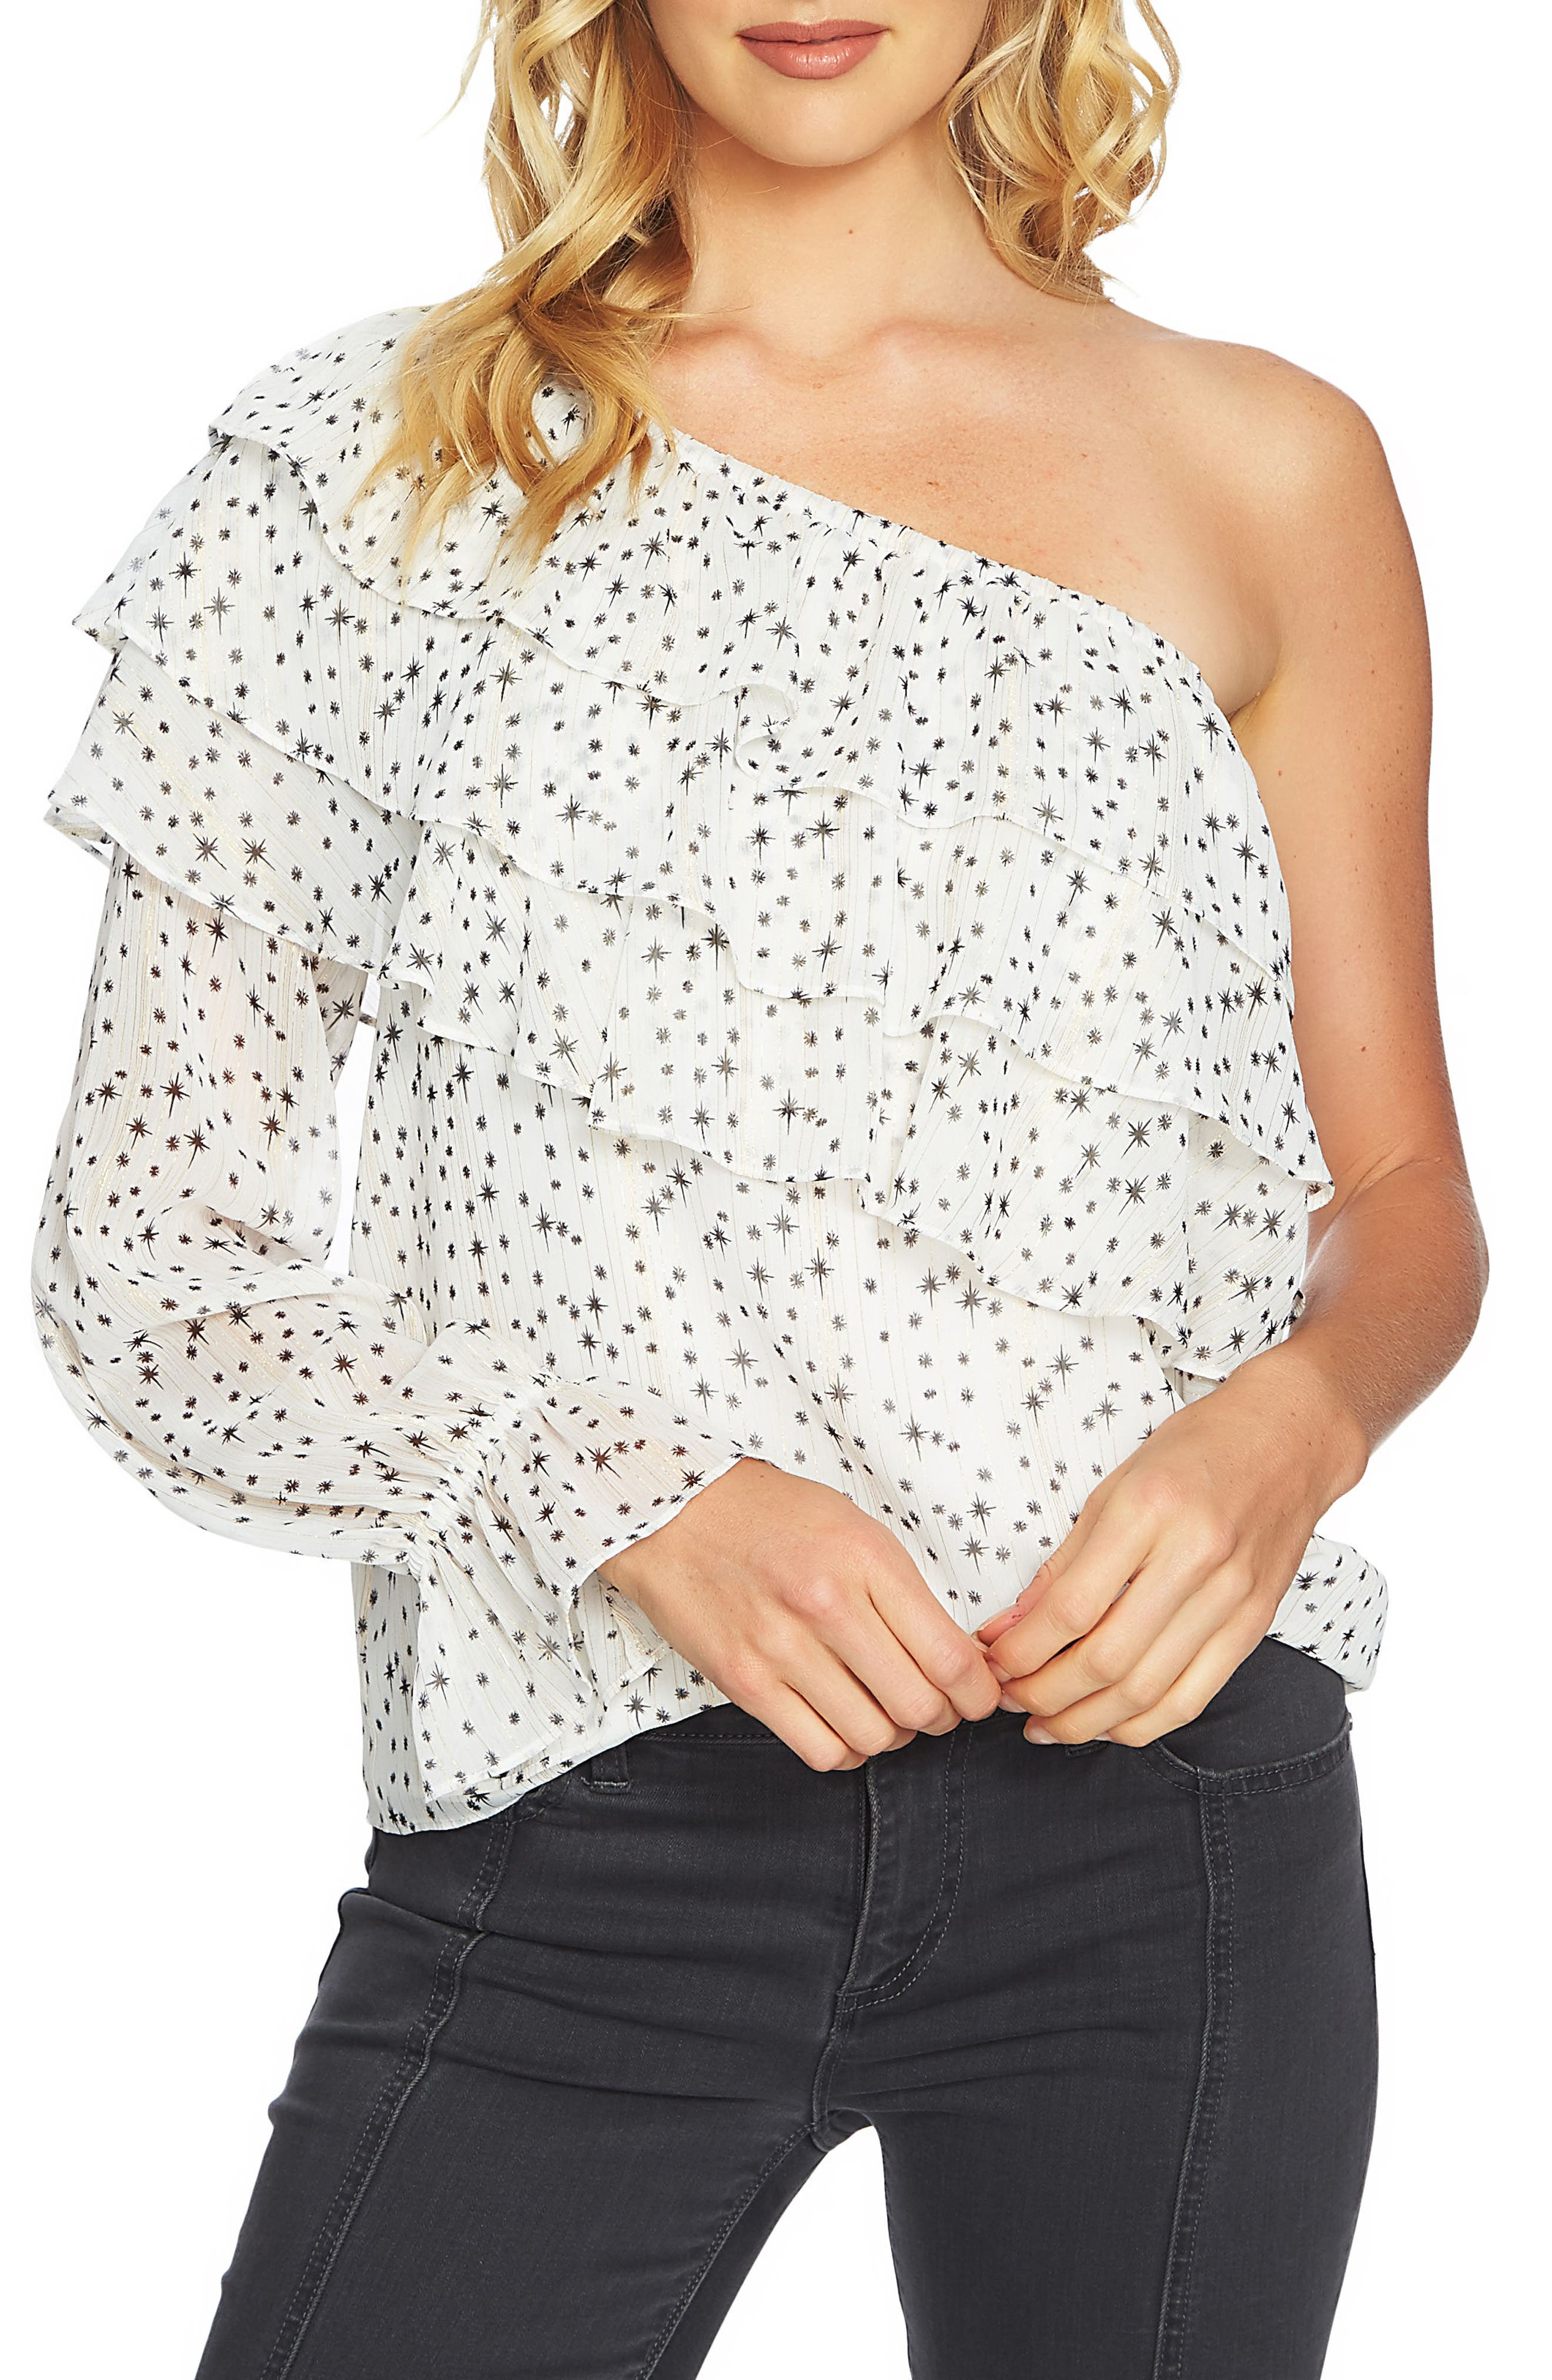 Alternate Image 1 Selected - 1.STATE One-Shoulder Tiered Blouse